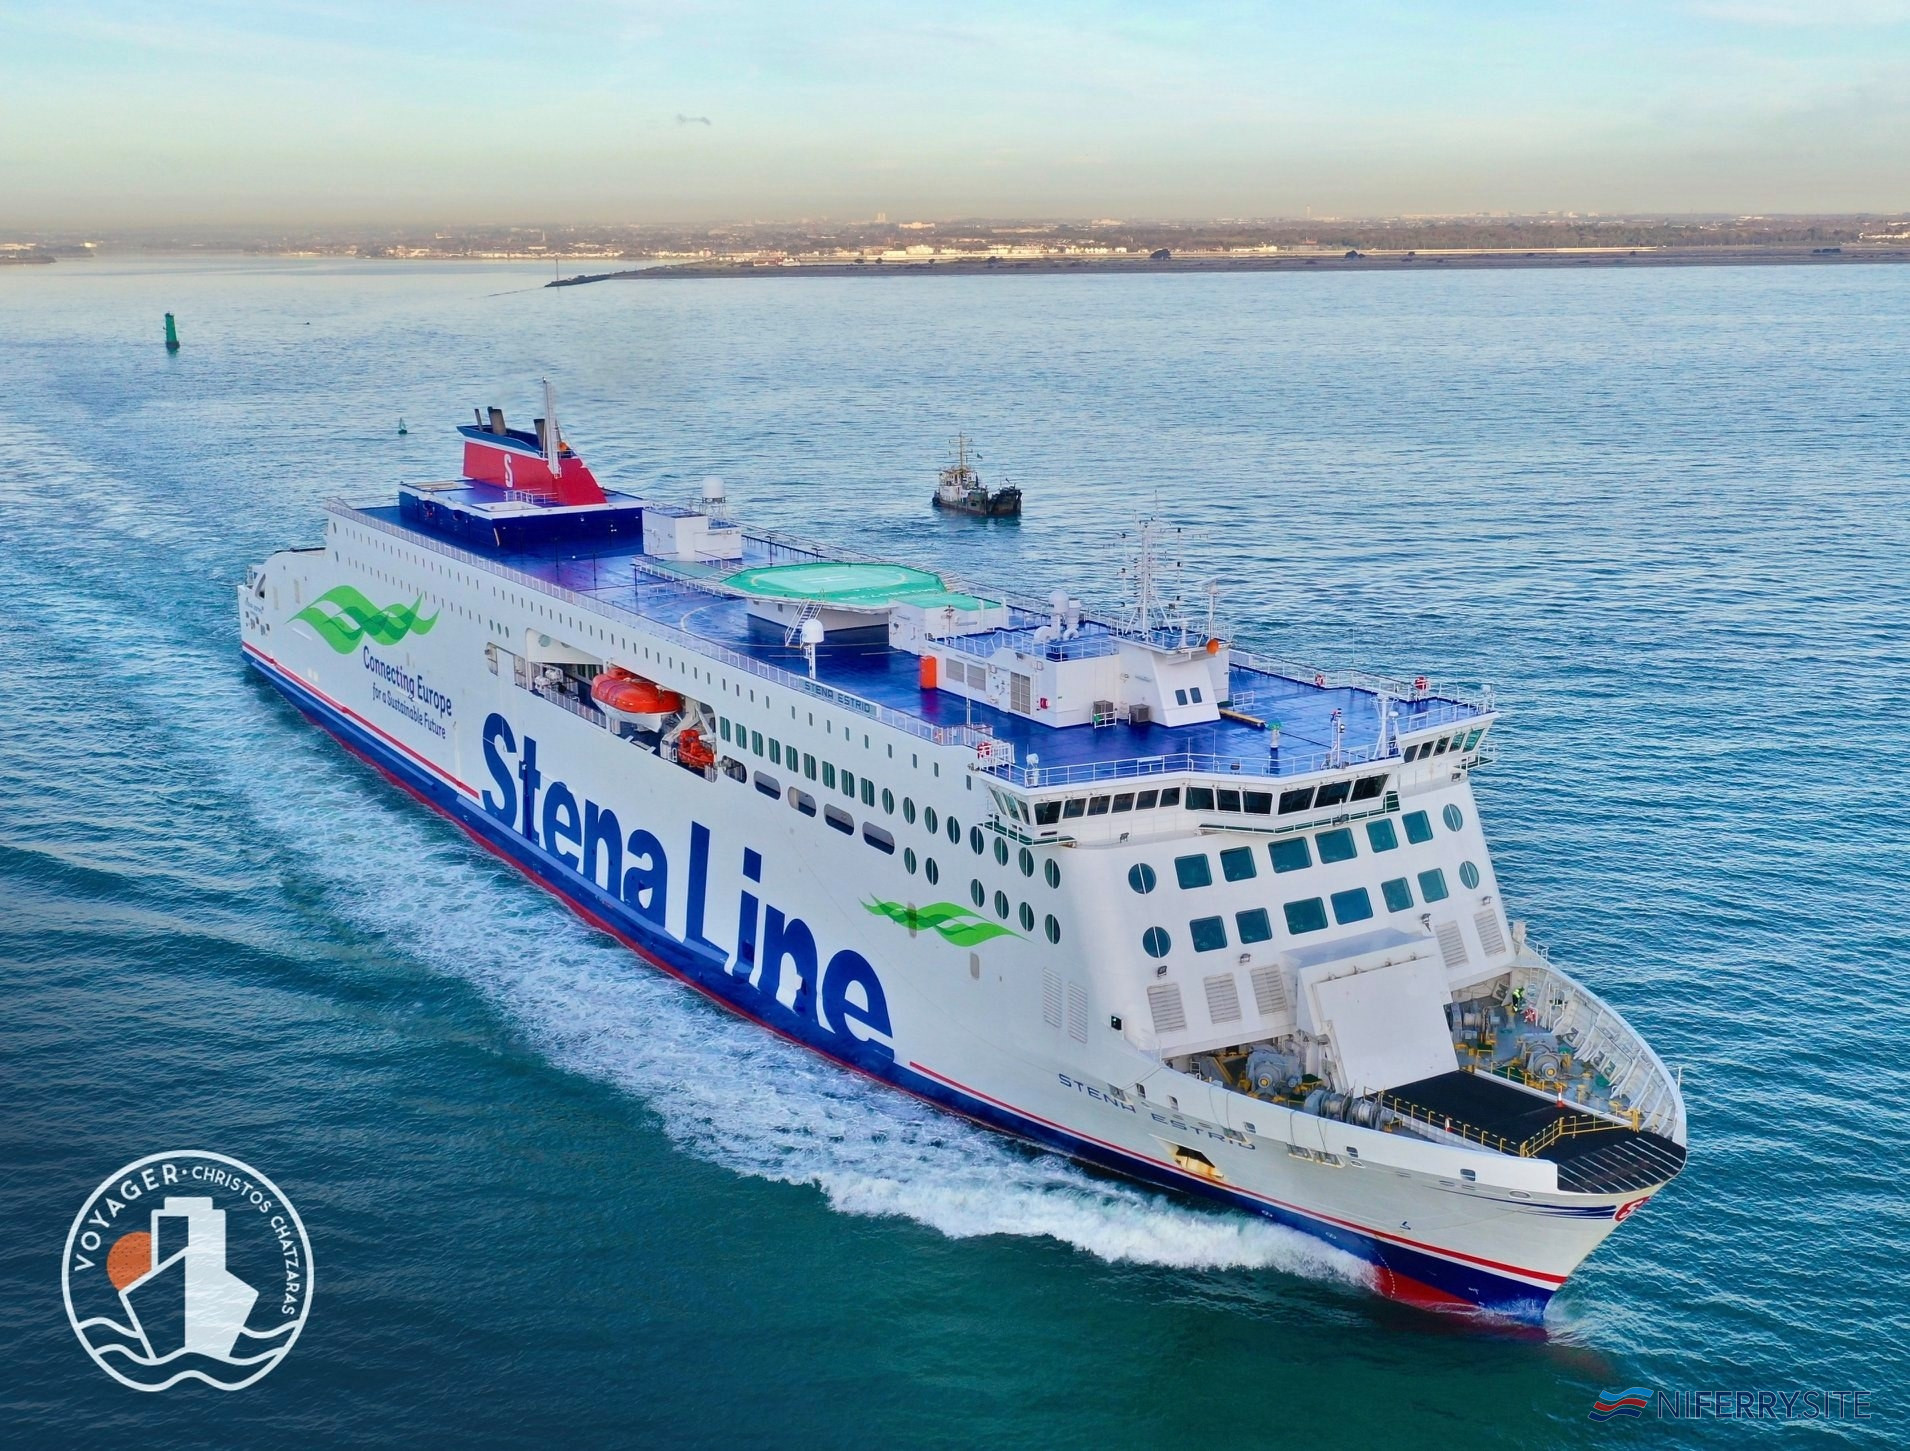 STENA ESTRID departing Dublin for Holyhead. Copyright © Voyager ShipSpotting.